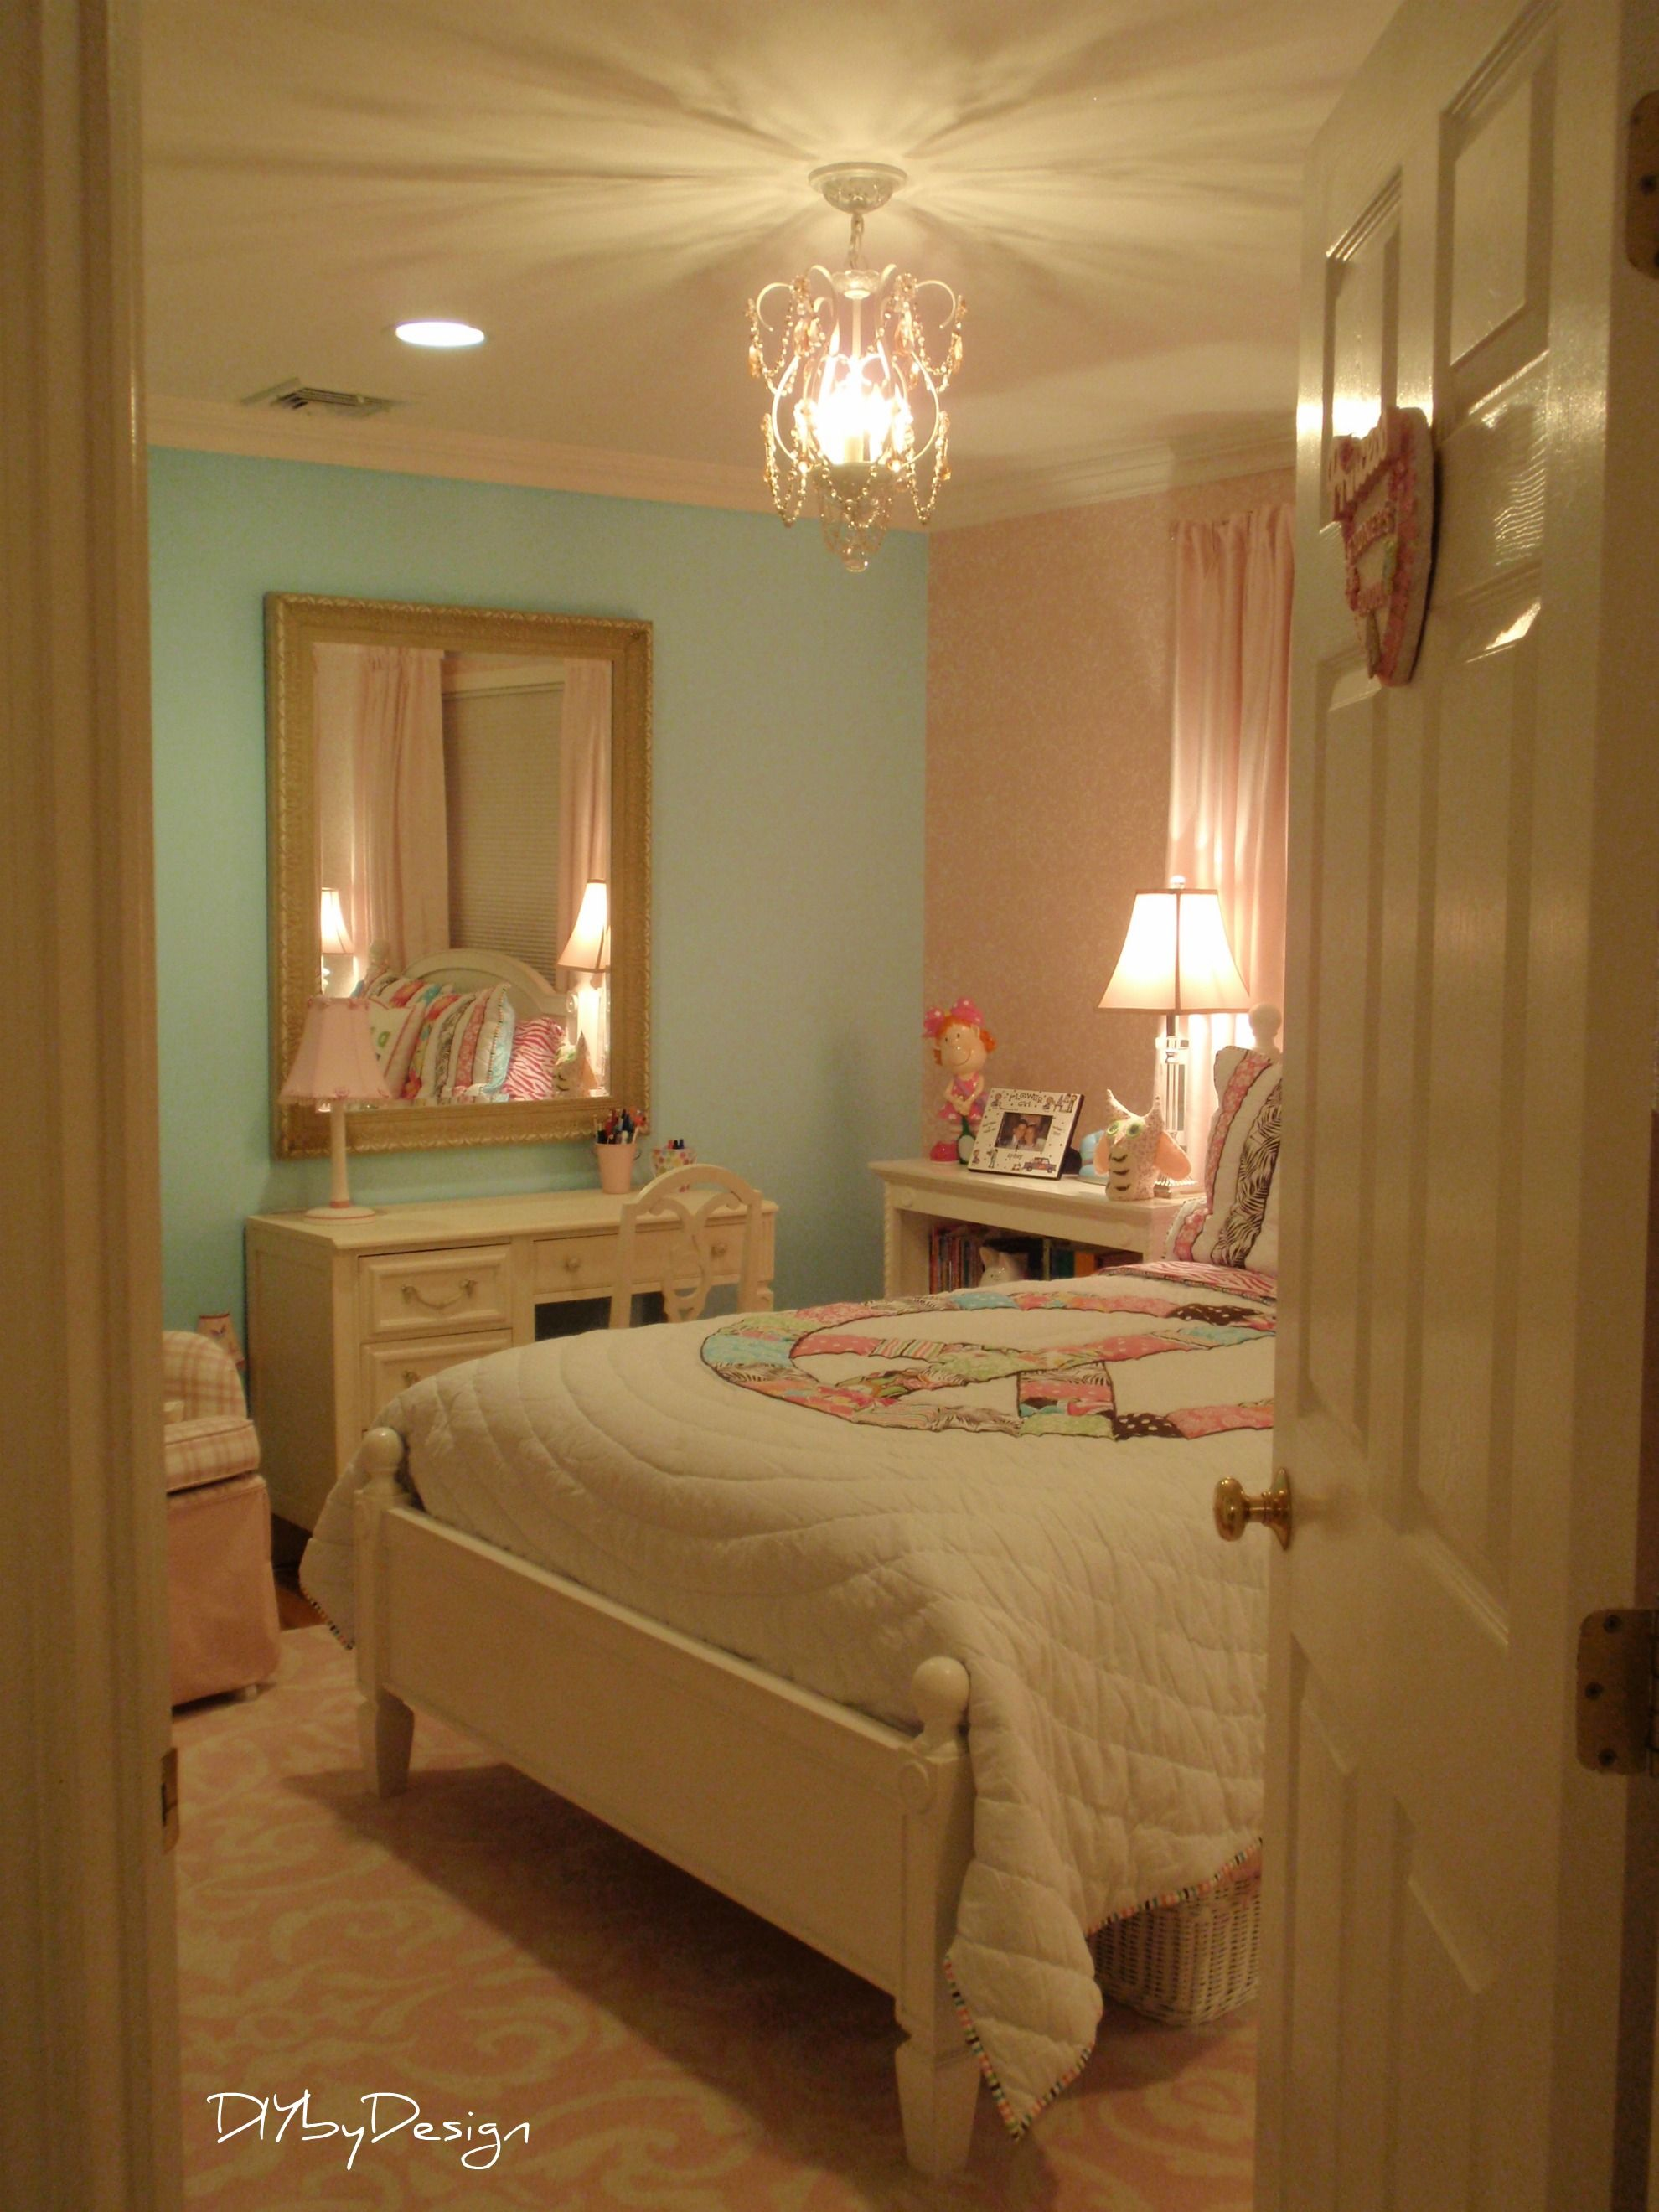 Tween Girl Room cute, not a fan of the peace sign though. otherwise love the colors